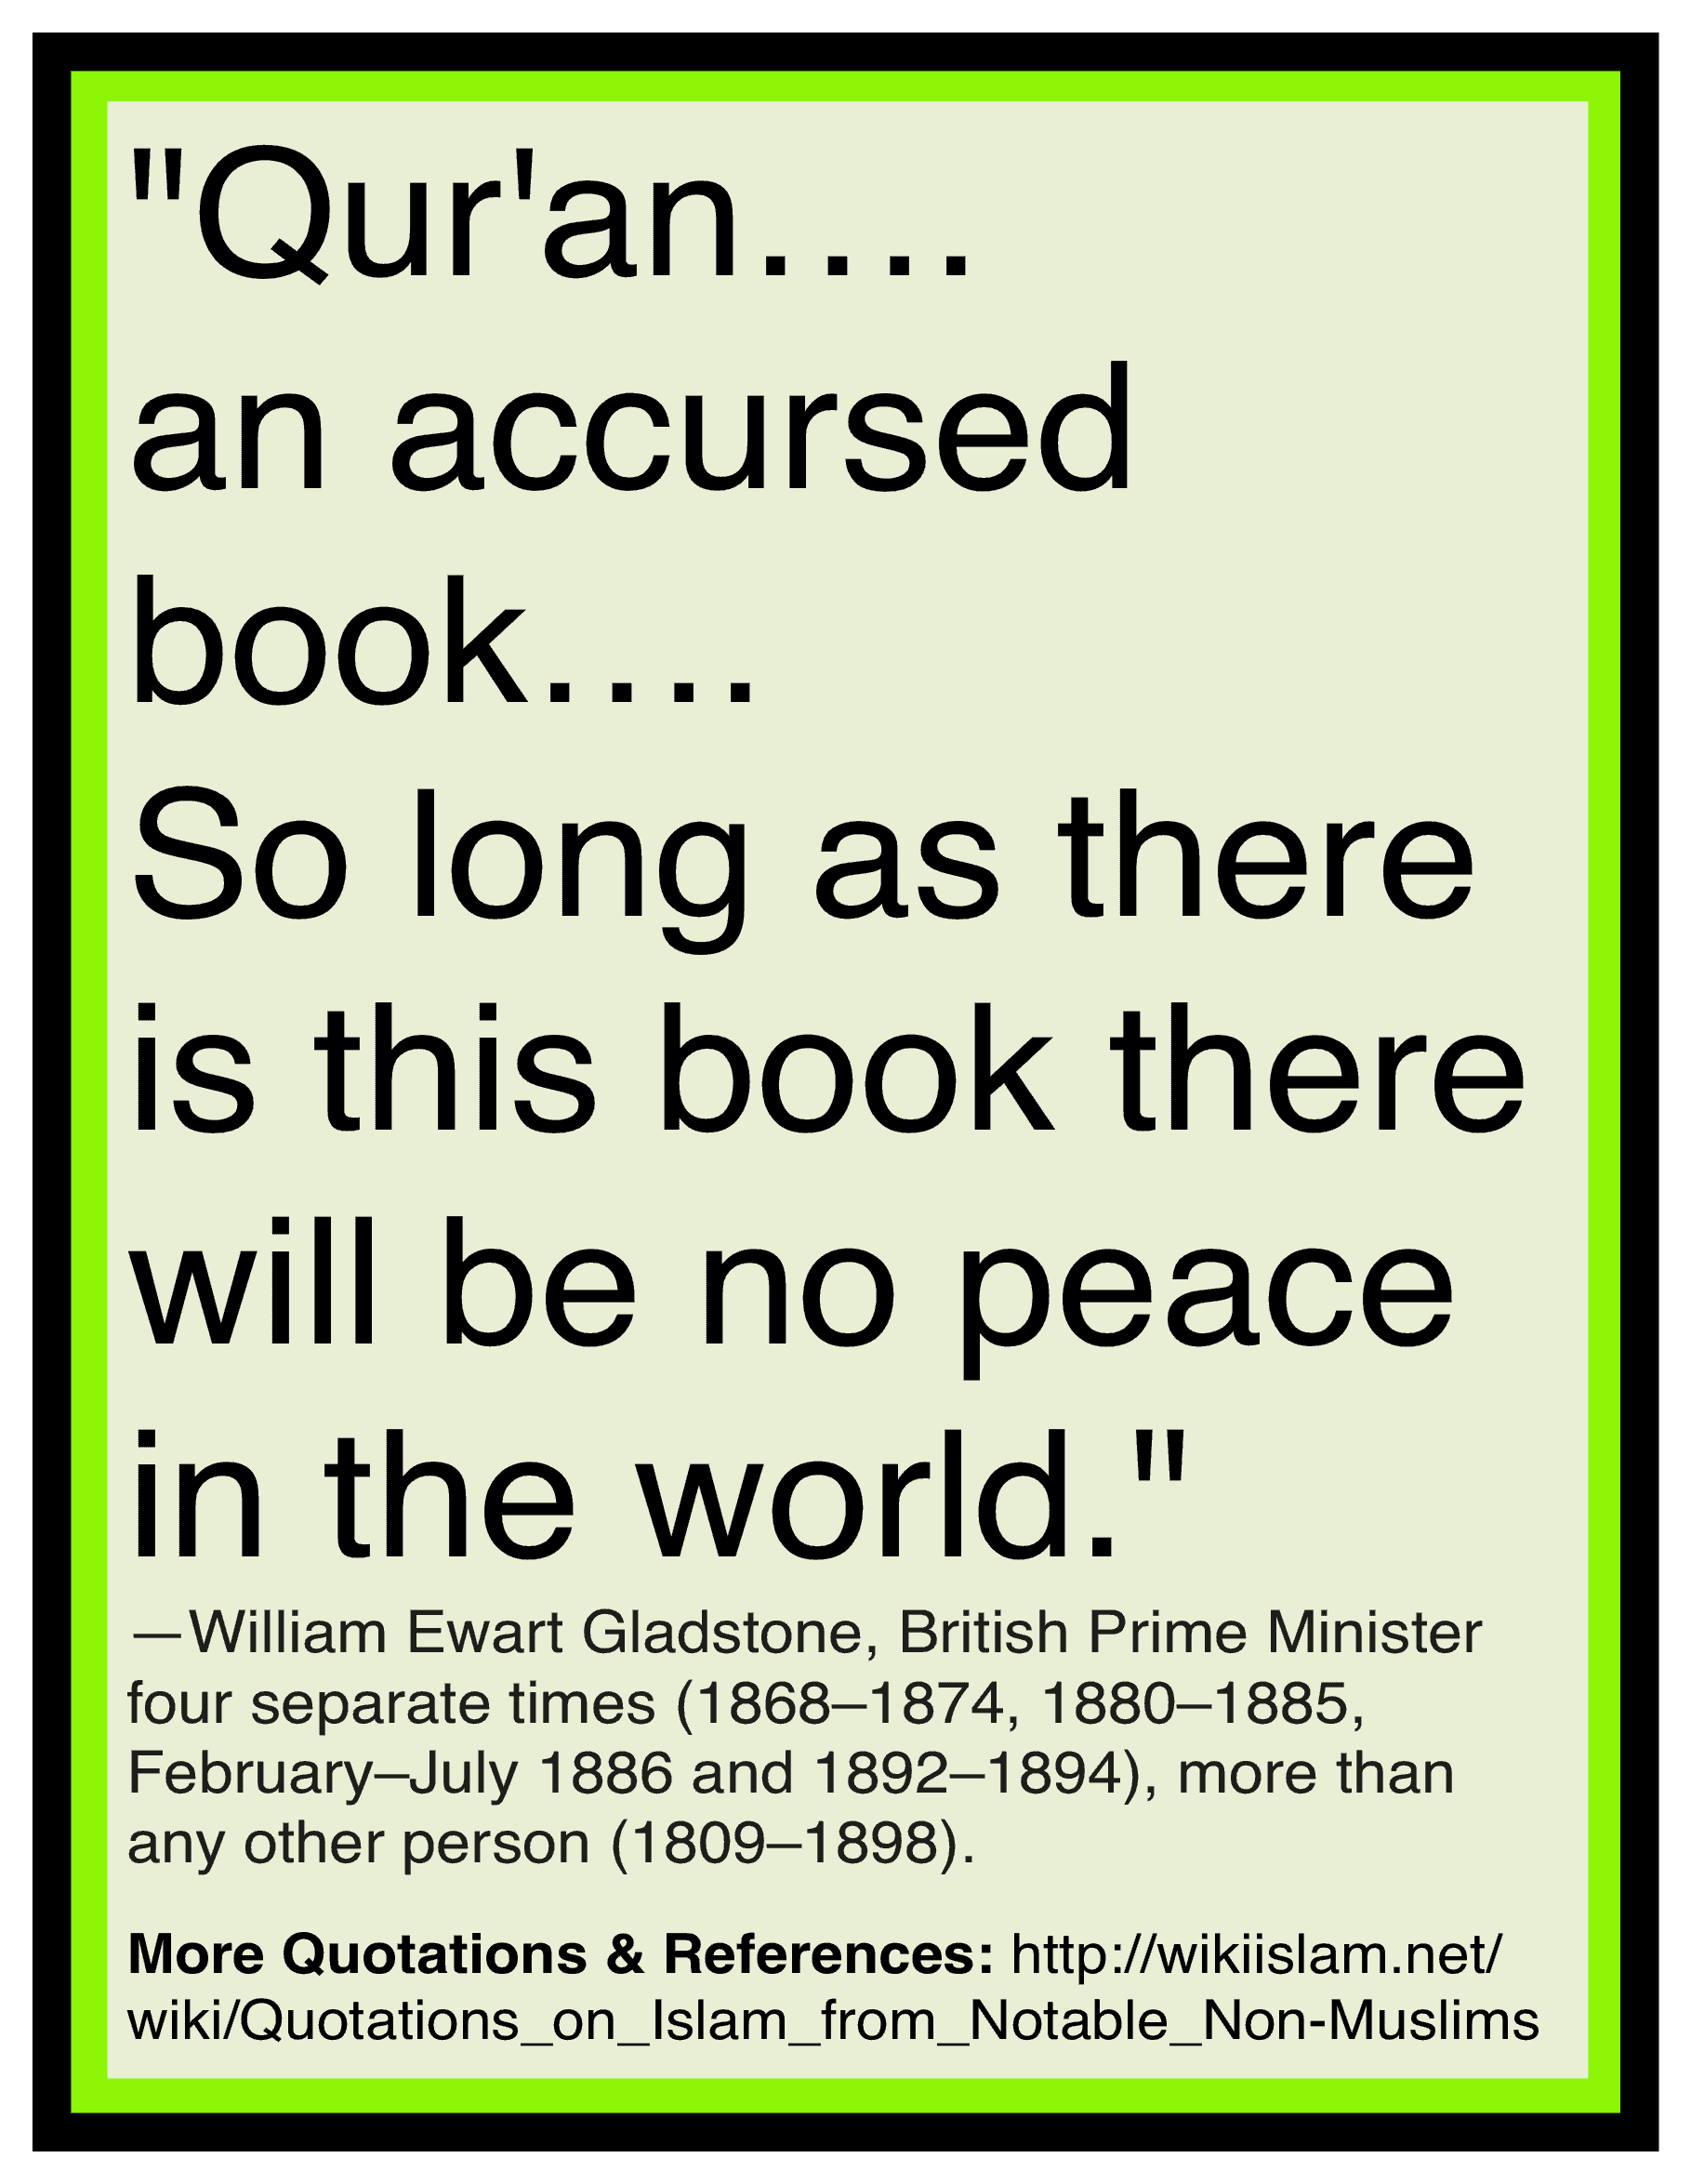 Quran is accursed book